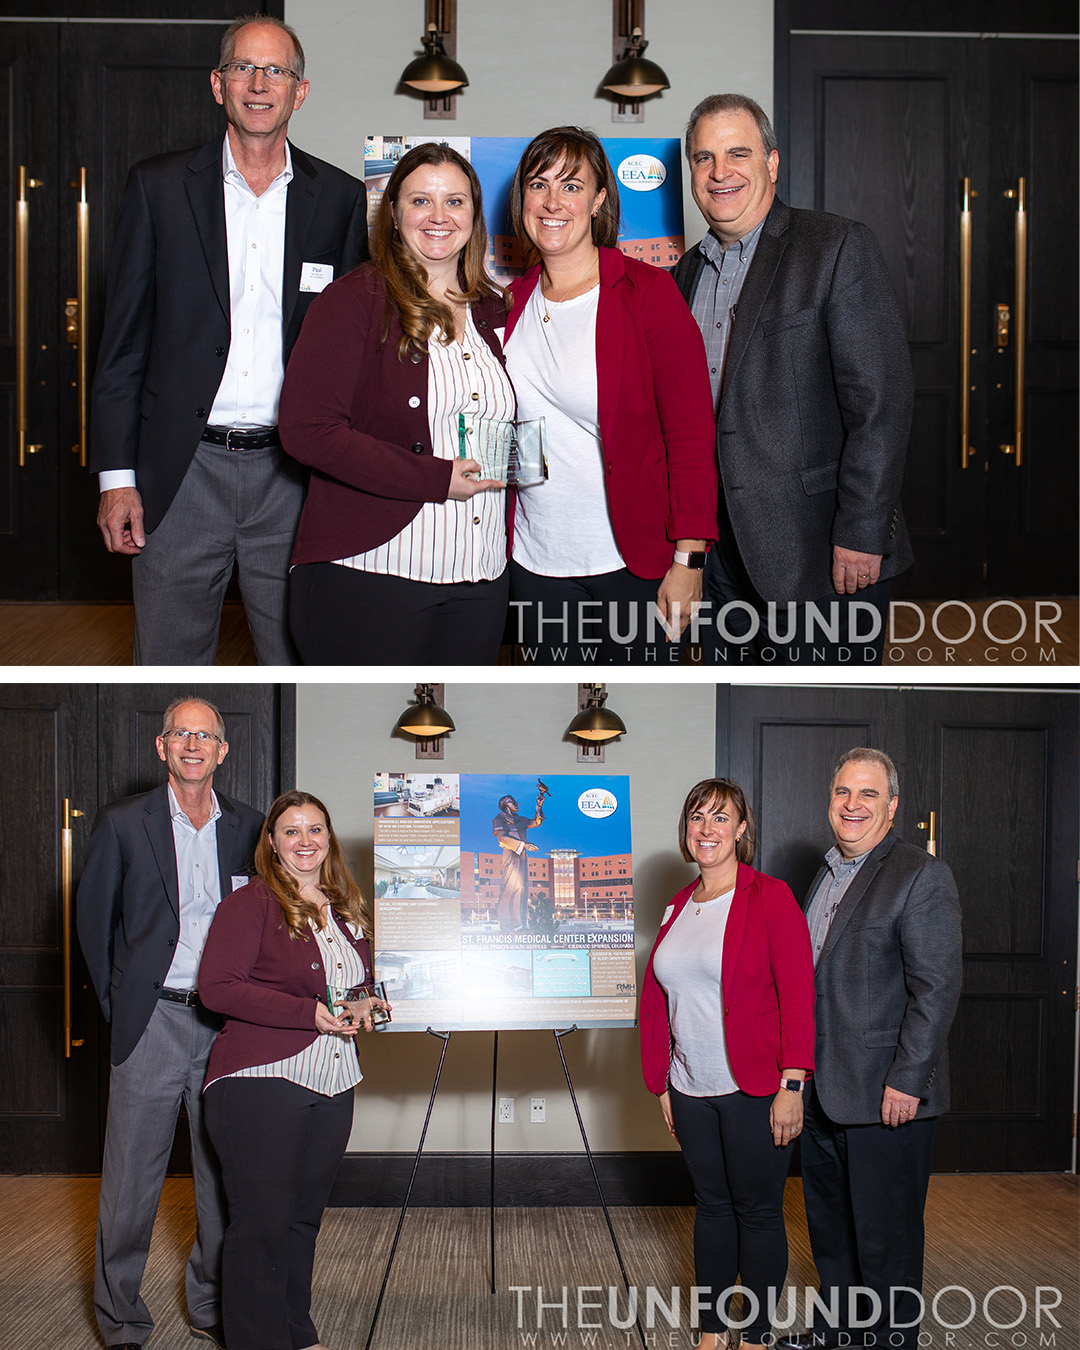 ACEC EEA 2019 TheUnfoundDoor collage